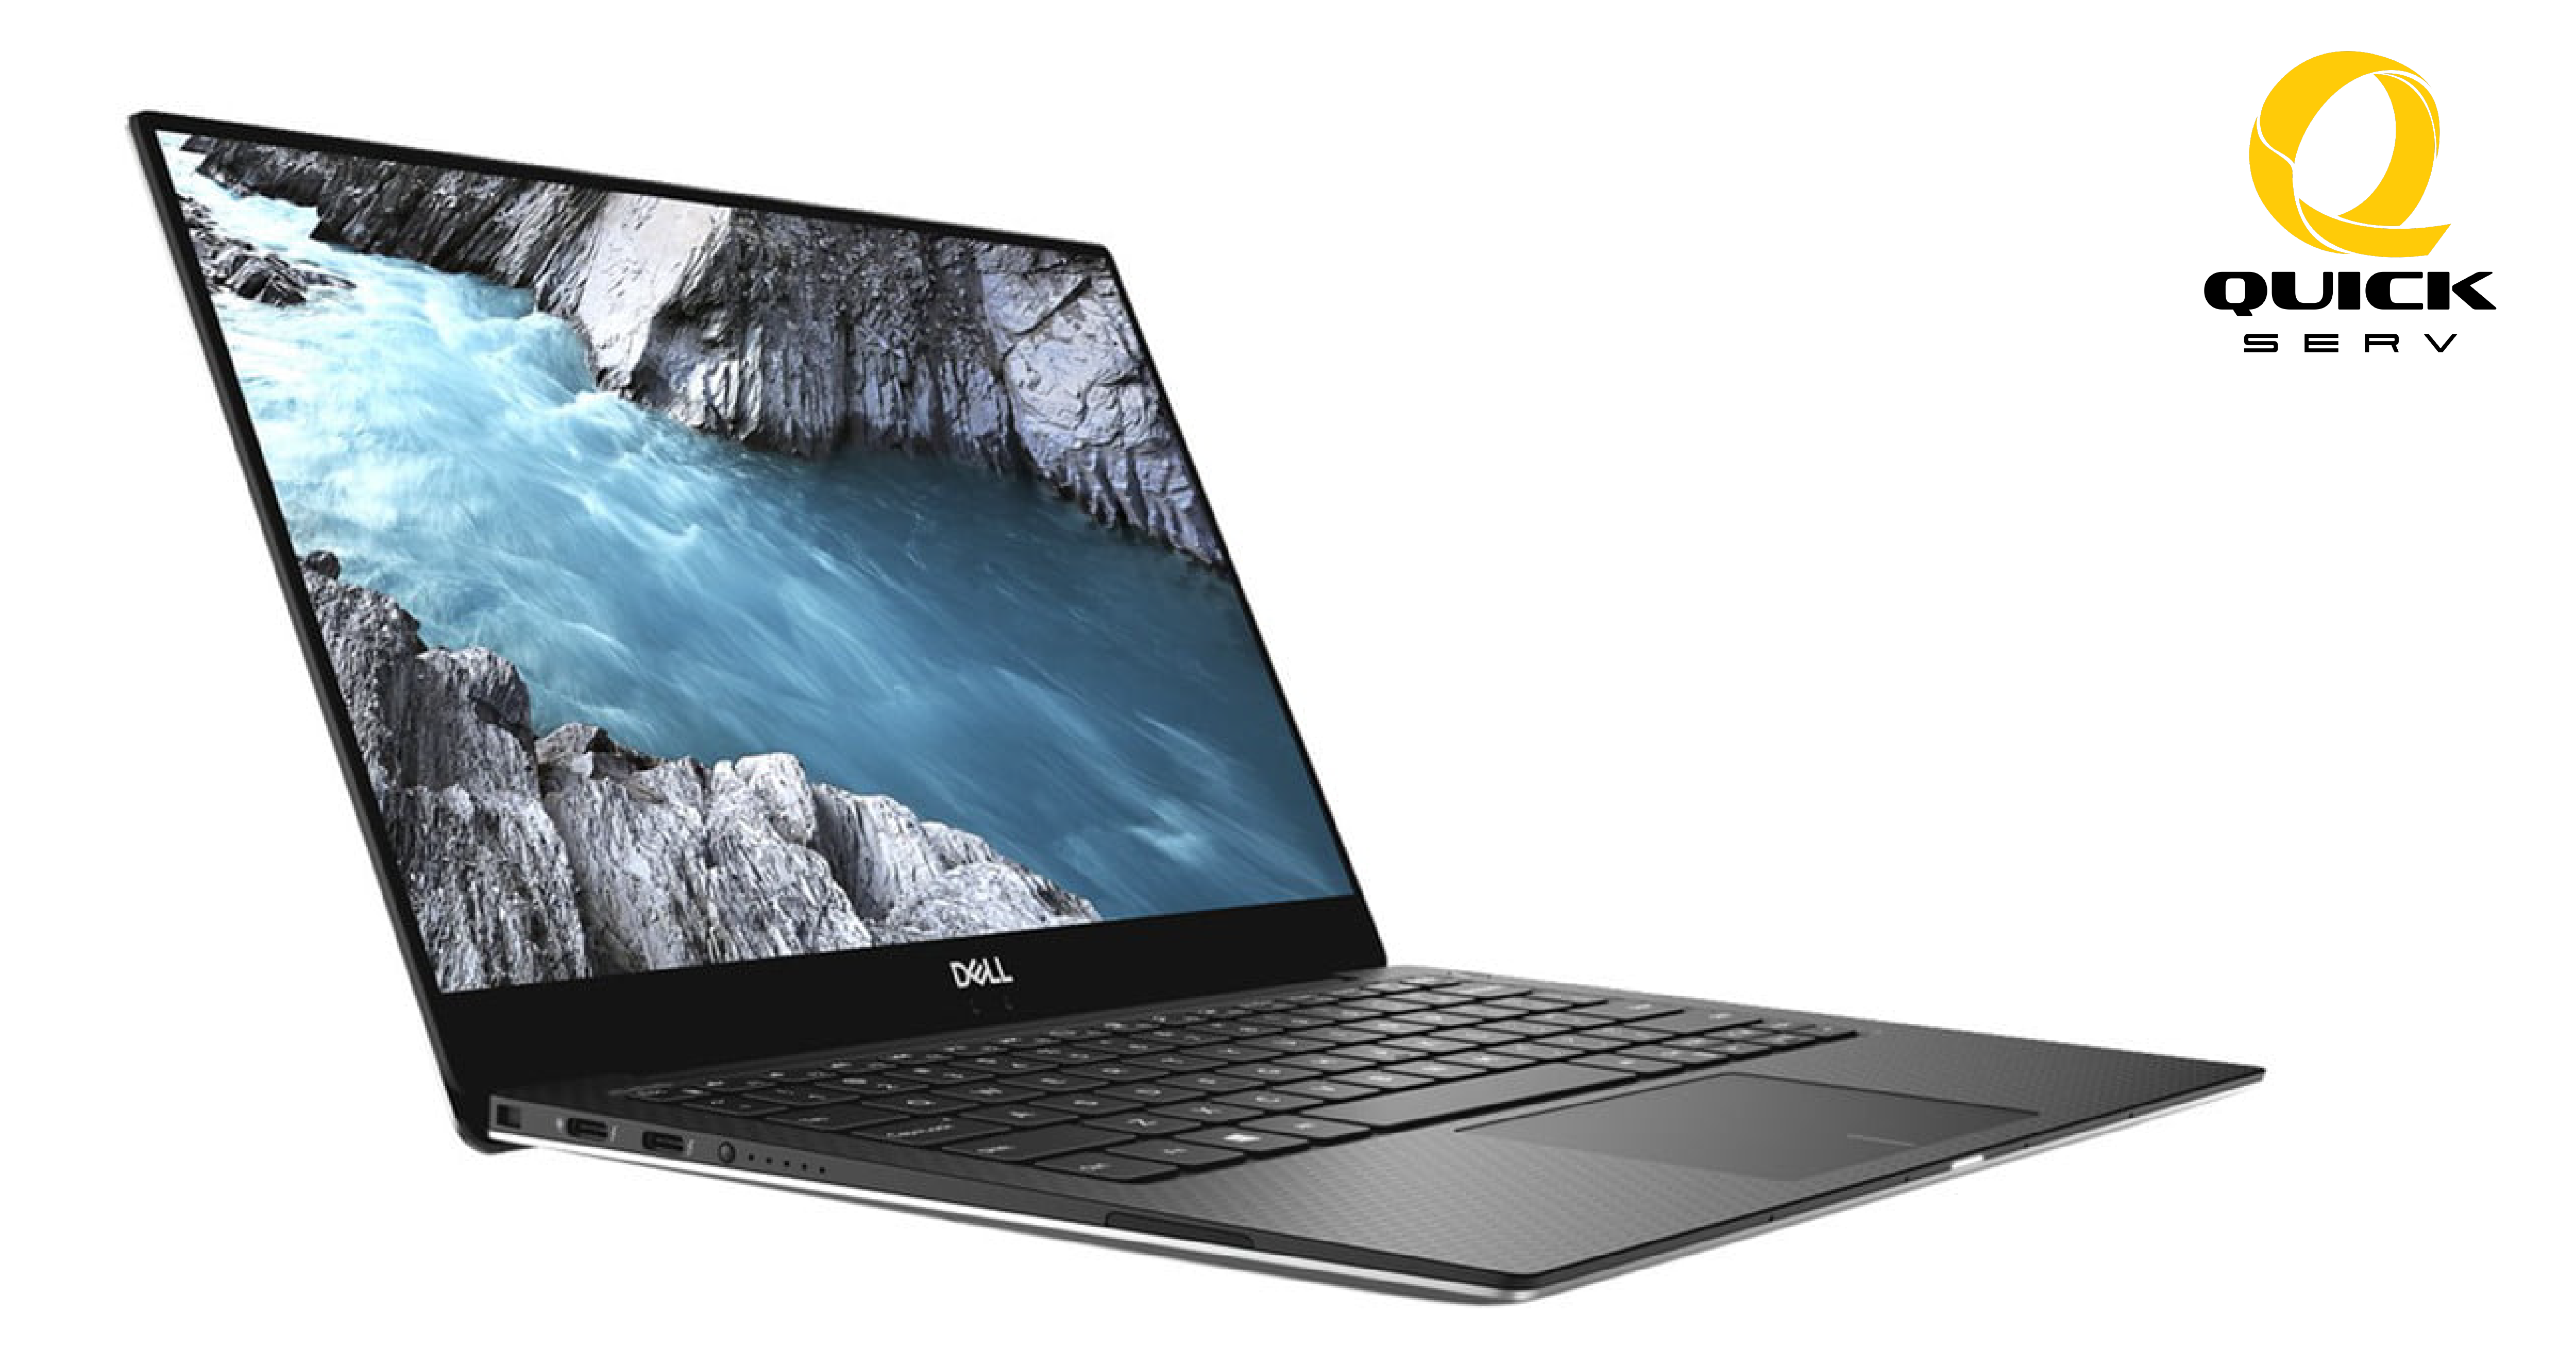 Dell XPS 13 (2018): Ultrabook